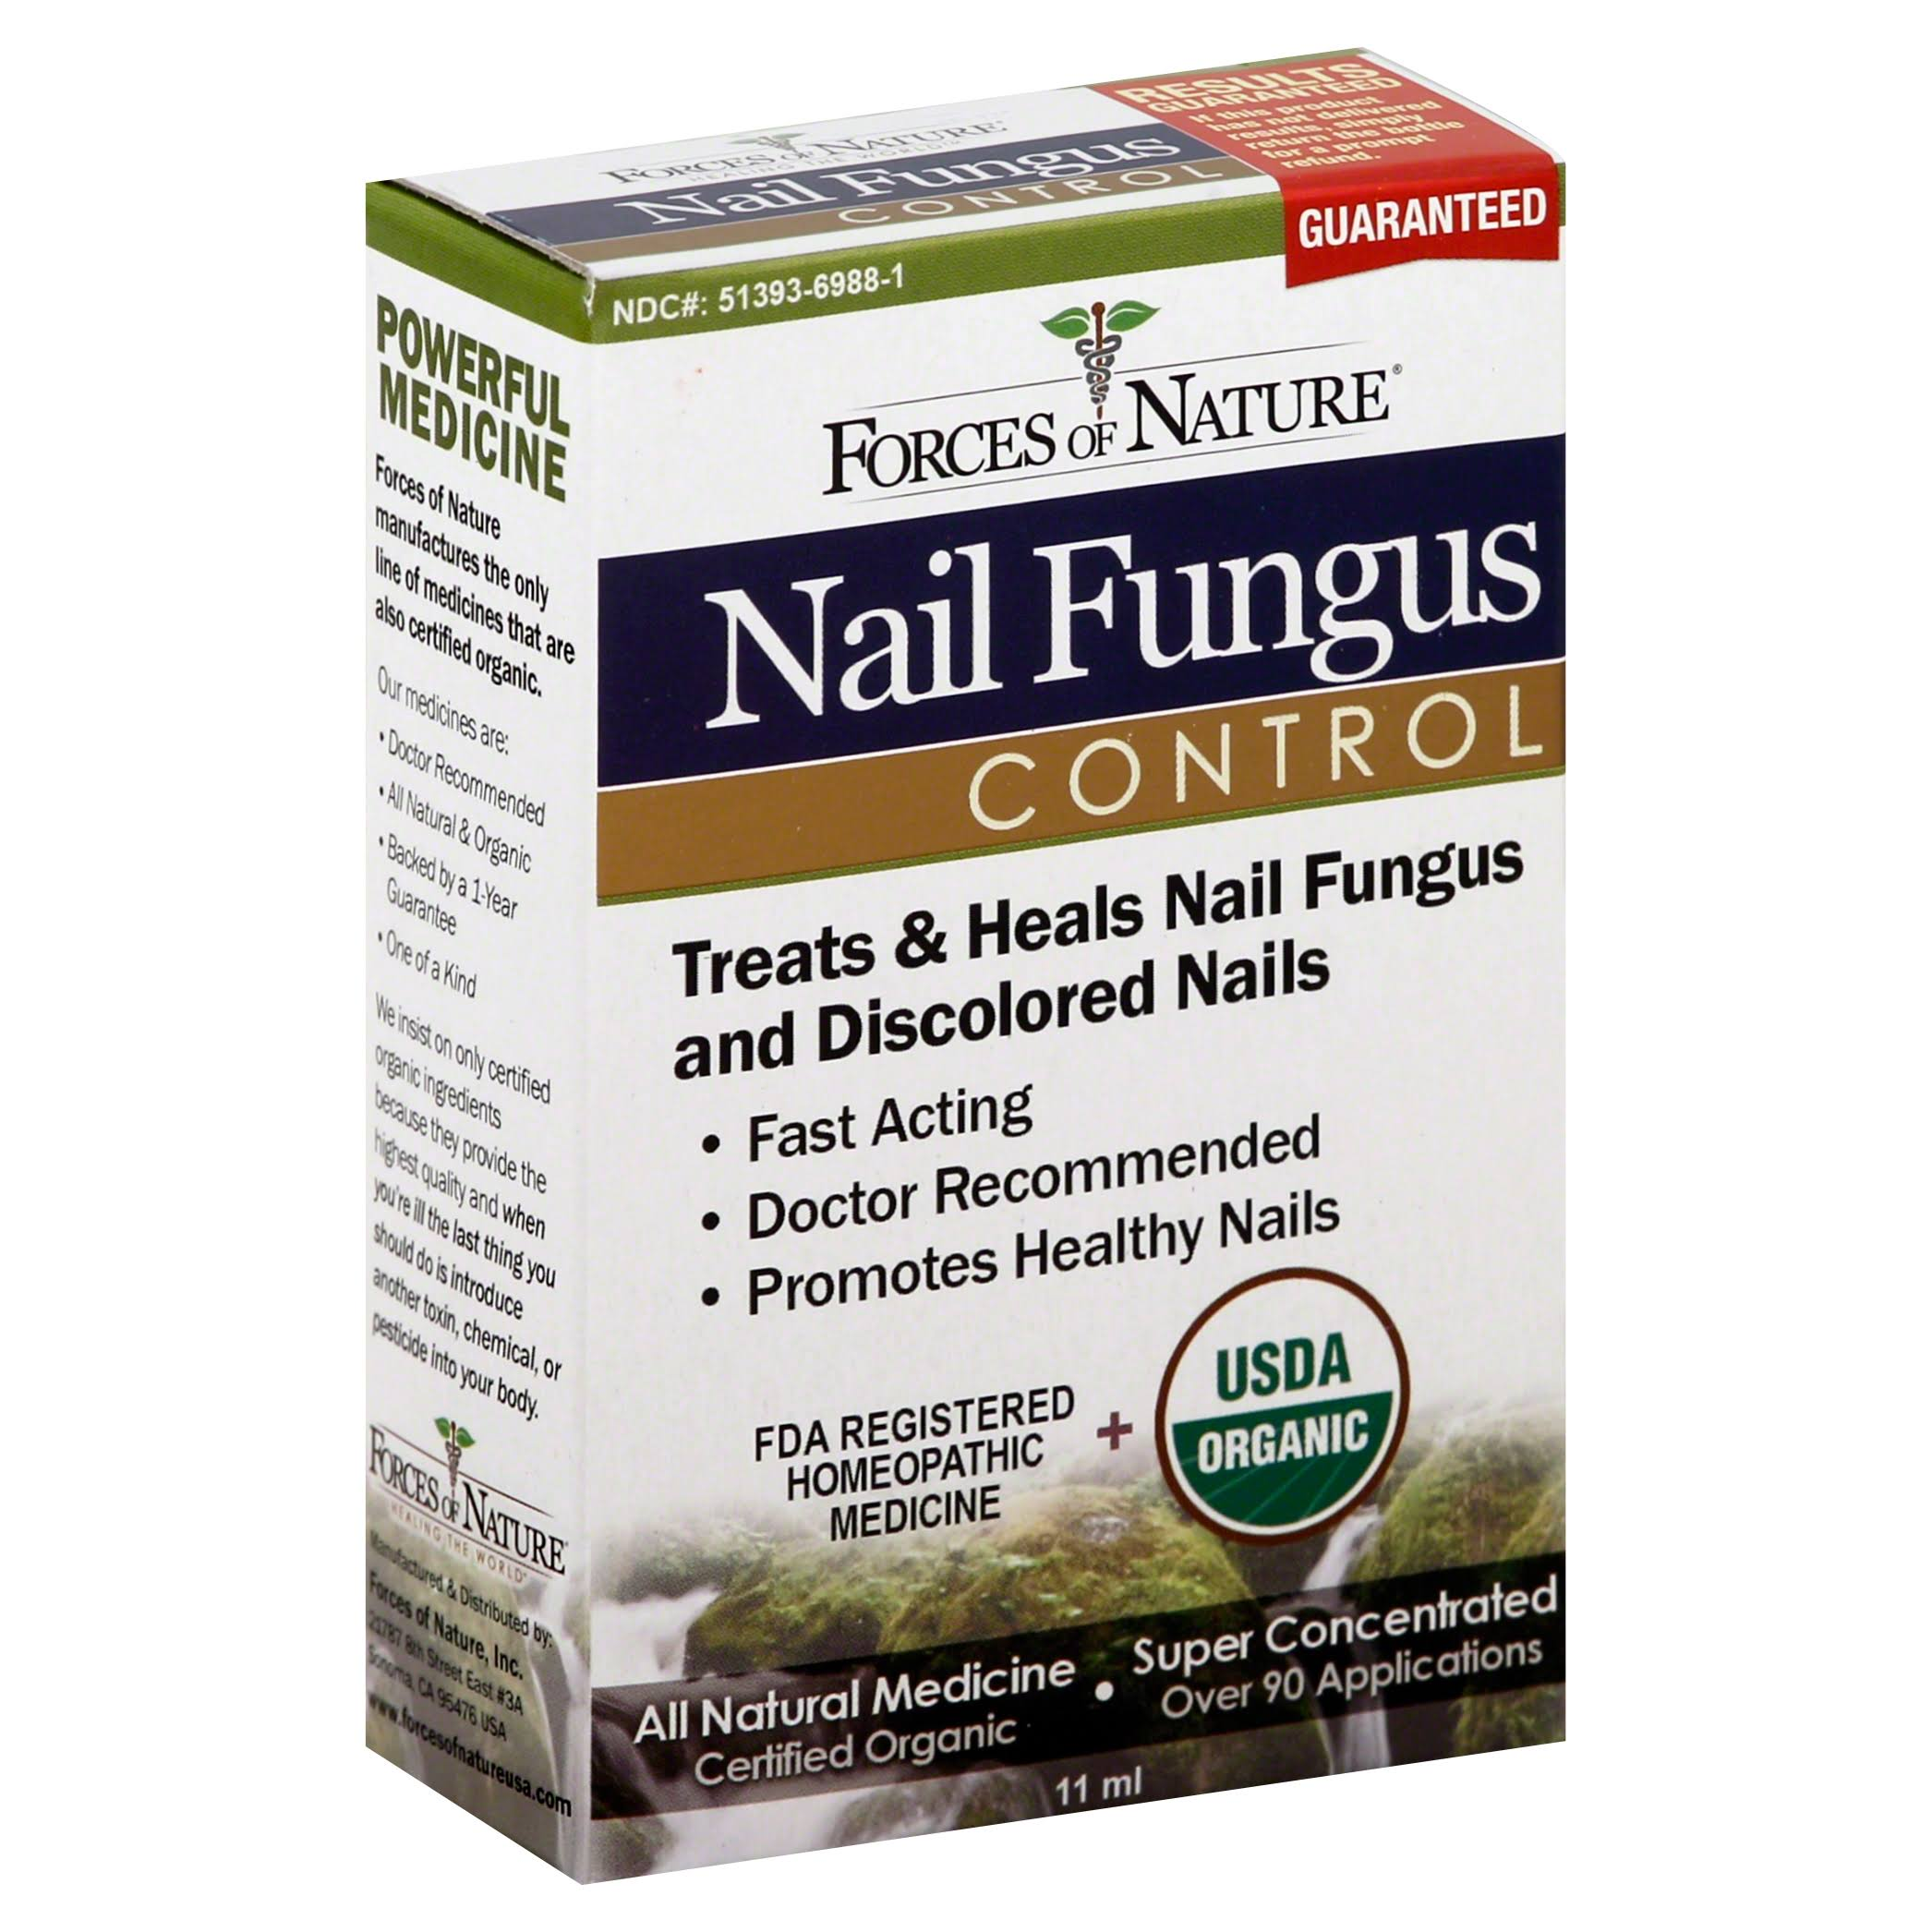 Forces of Nature Nail Fungus Control - 11g